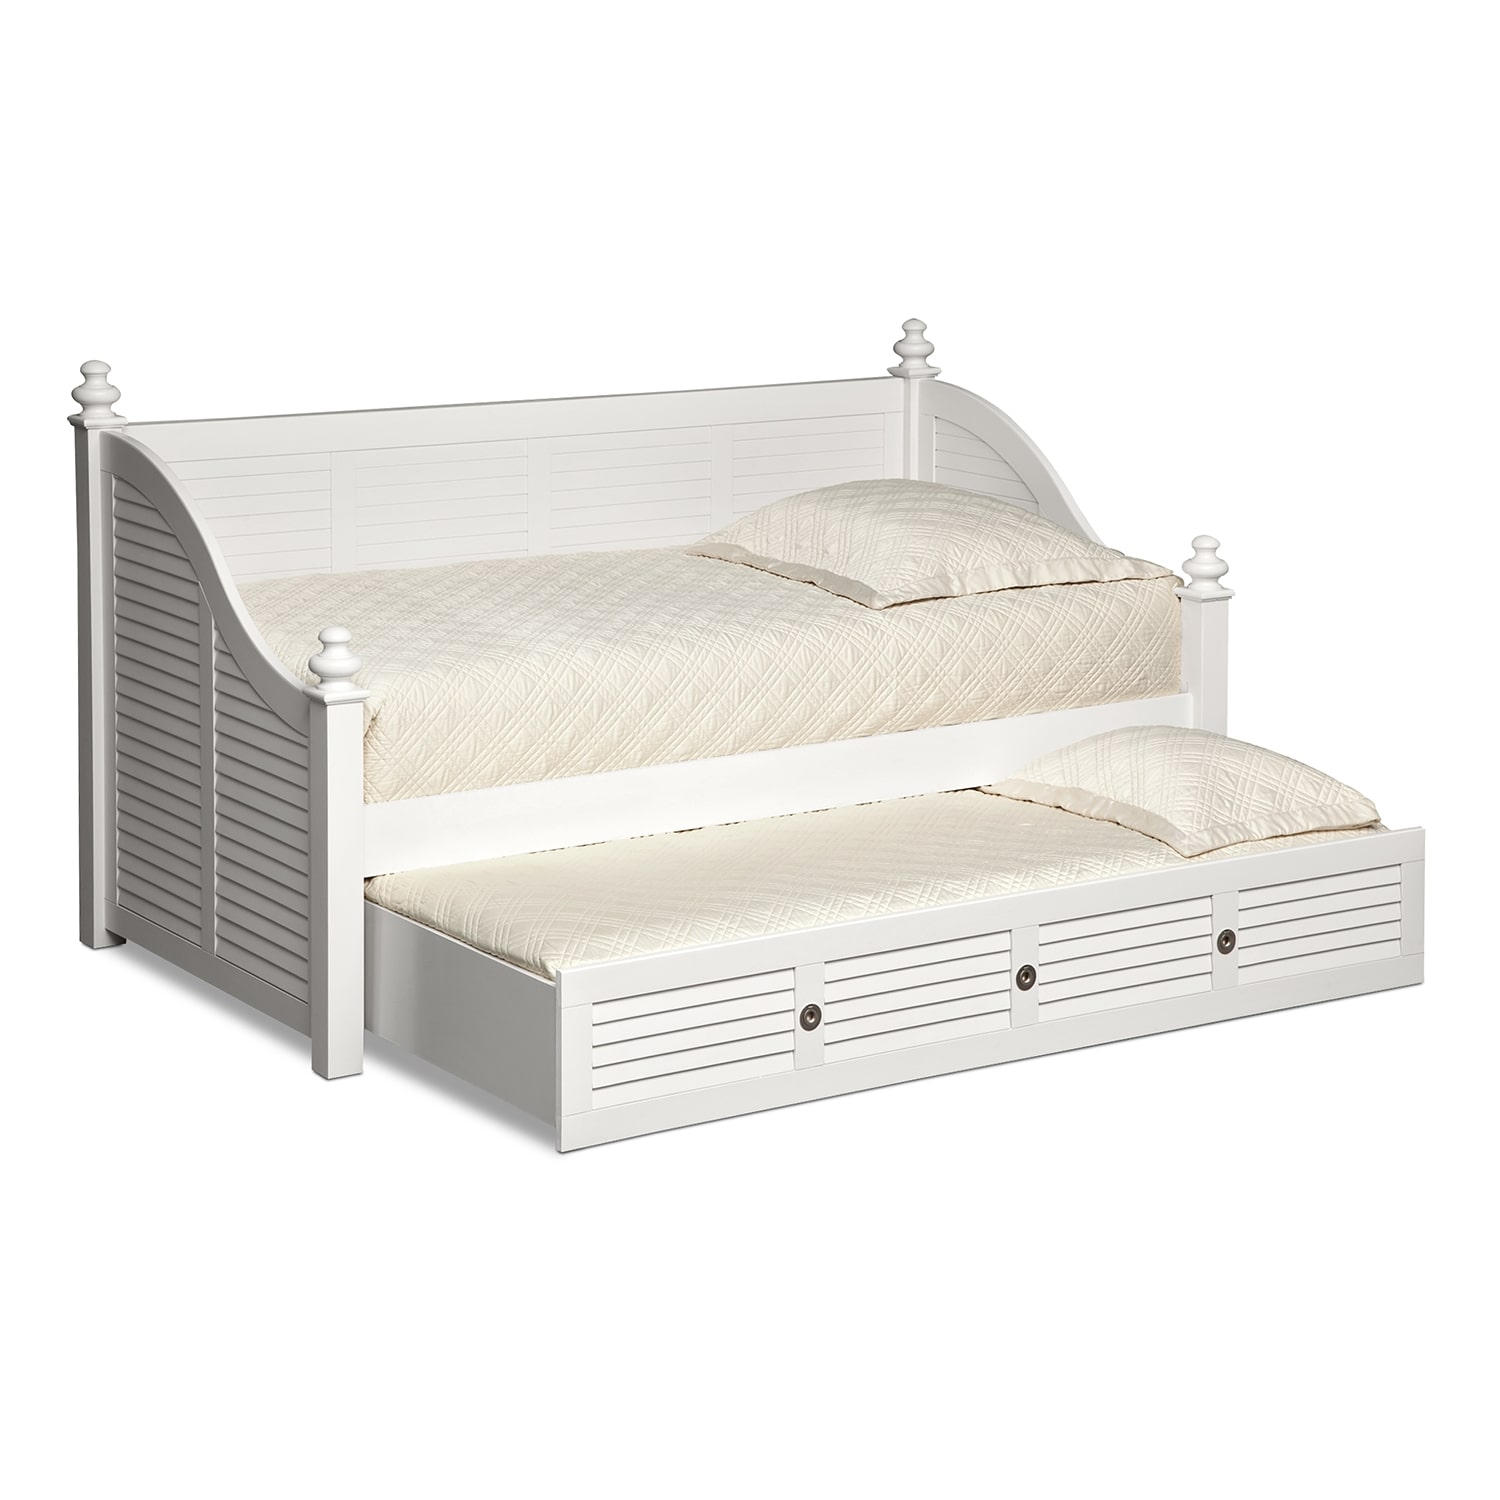 Kids Furniture - Seaside White II Daybed with Trundle